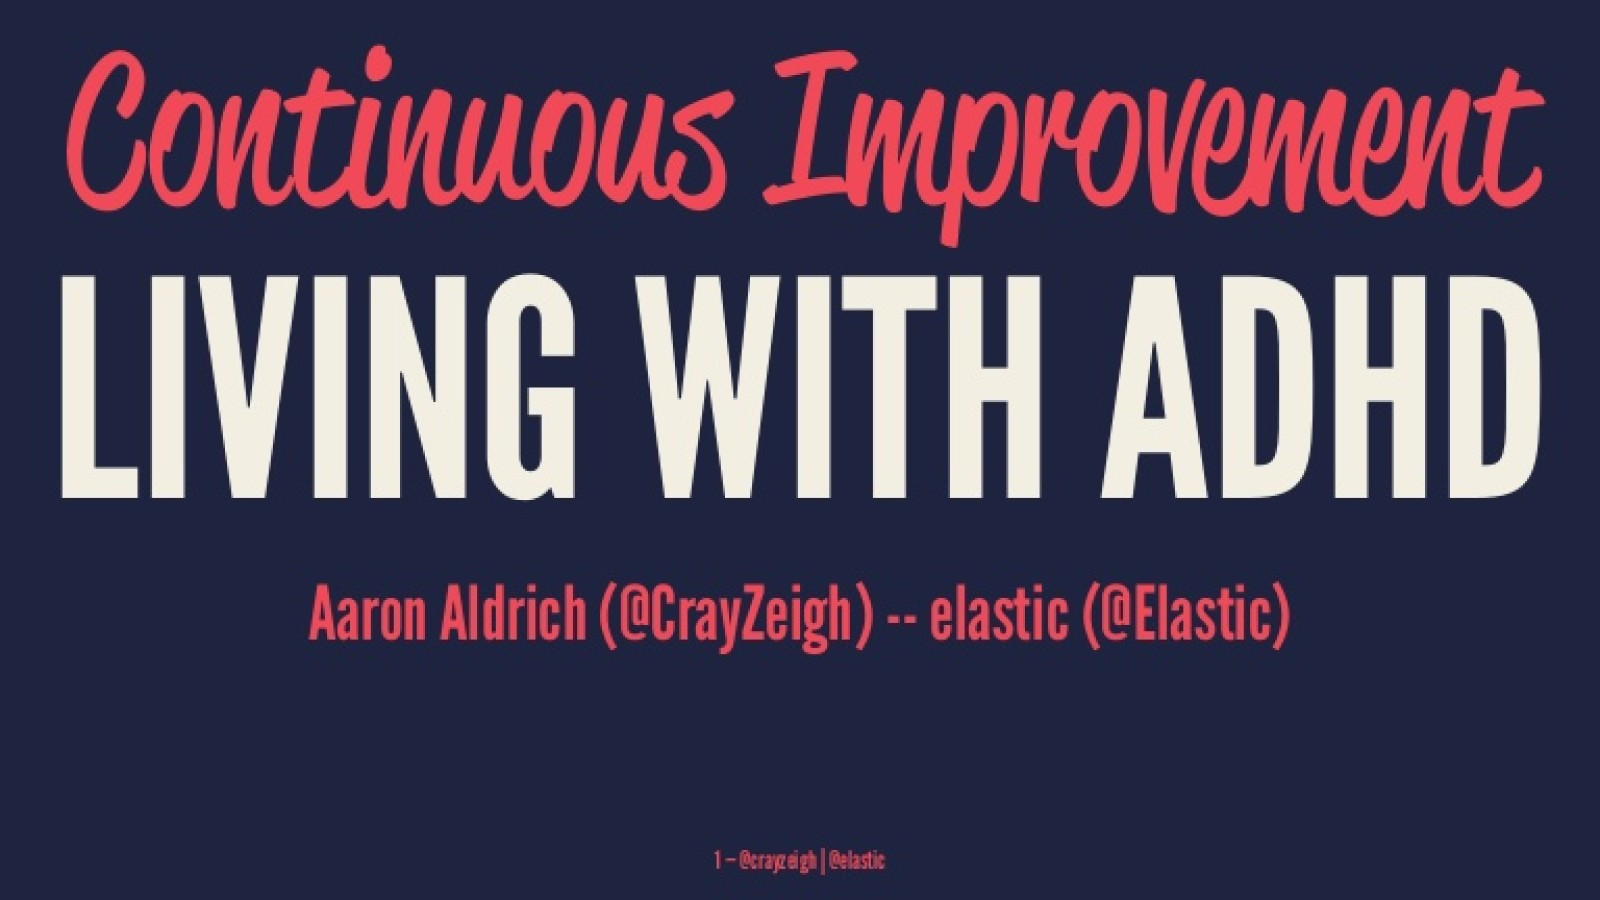 Continuous Improvement: Living with ADHD